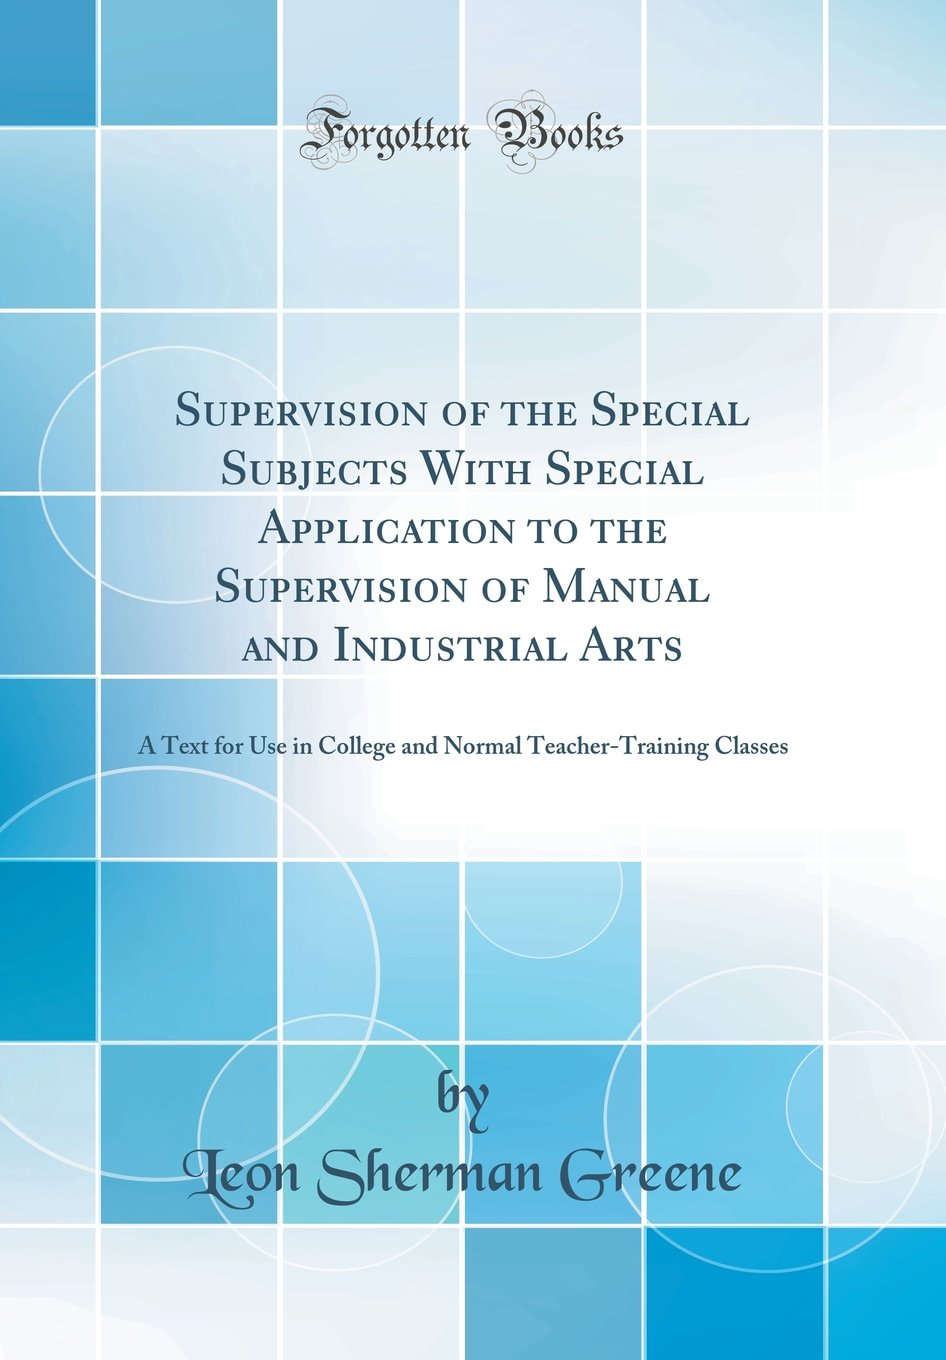 Supervision of the Special Subjects With Special Application to the Supervision of Manual and Industrial Arts: A Text for Use in College and Normal Teacher-Training Classes (Classic Reprint) pdf epub